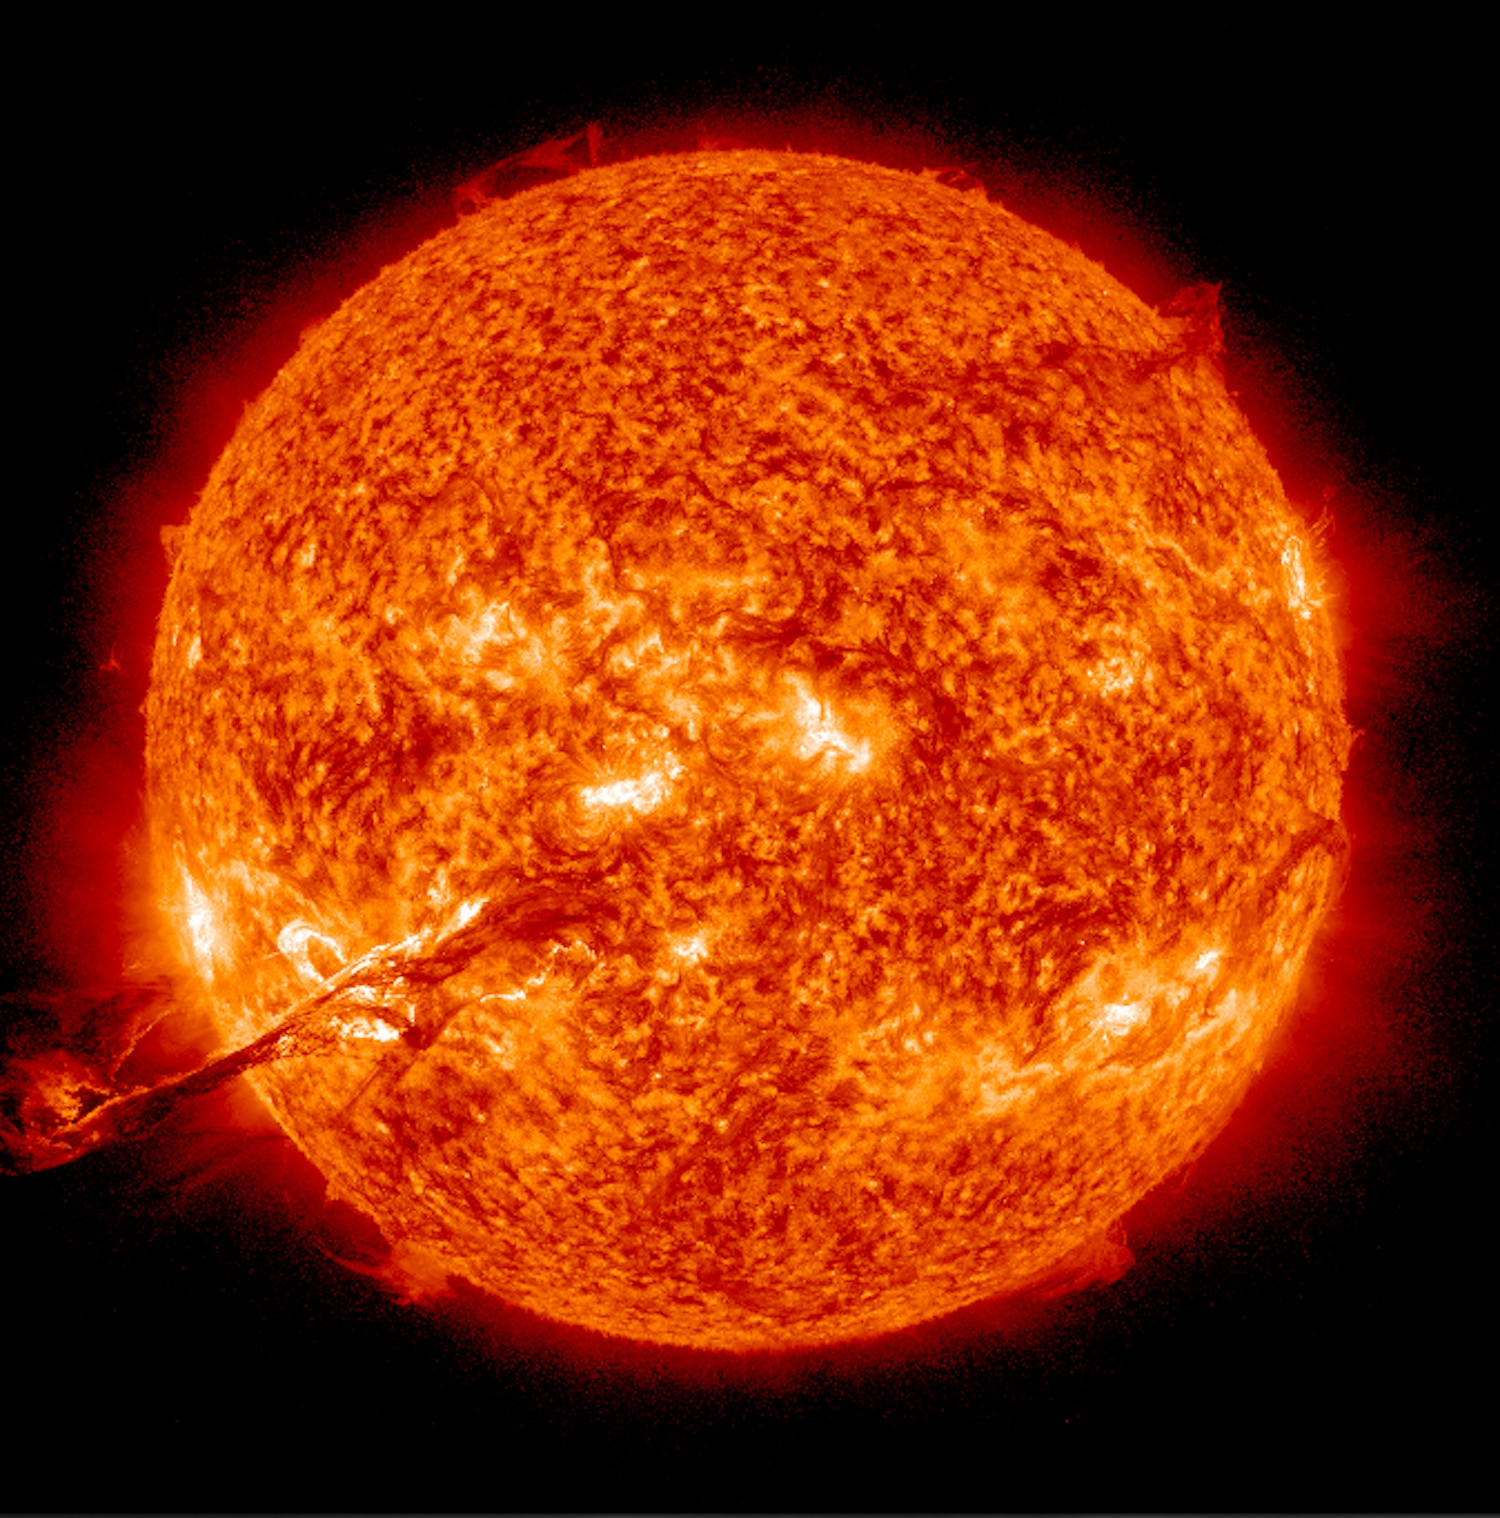 Plasma Prominence from the Sun (Aug. 31, 2012)